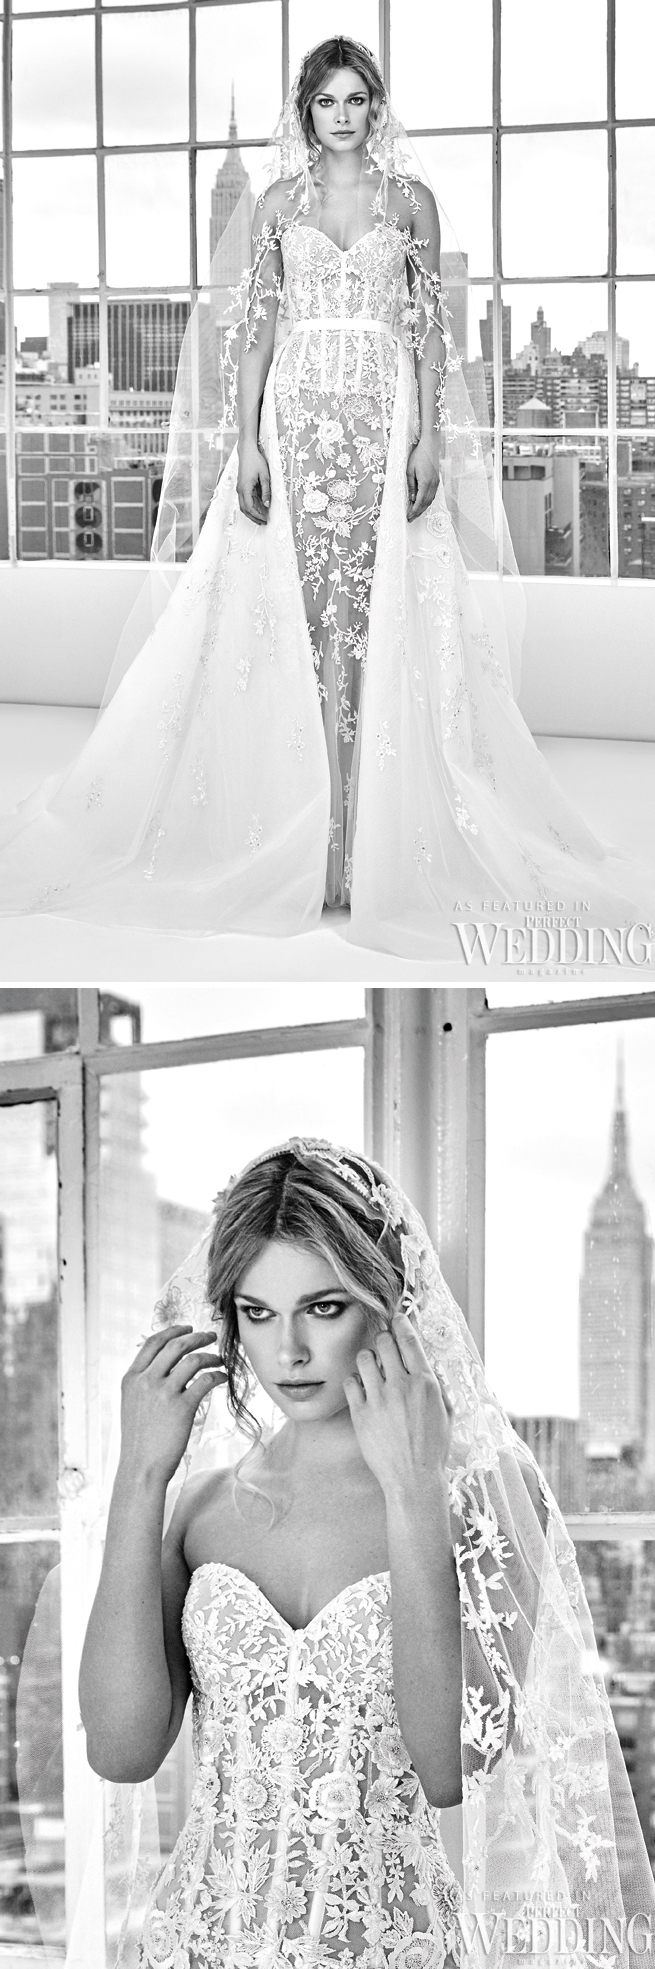 Zuhair Murad, Zuhair Murad Bridal Collection, Zuhair Murad Wedding Gowns, Zuhair Murad Summer 2018 Bridal Collection, Wedding Gowns, Perfect Wedding Magazine, Perfect Wedding Blog, Zuhair Murad Bride